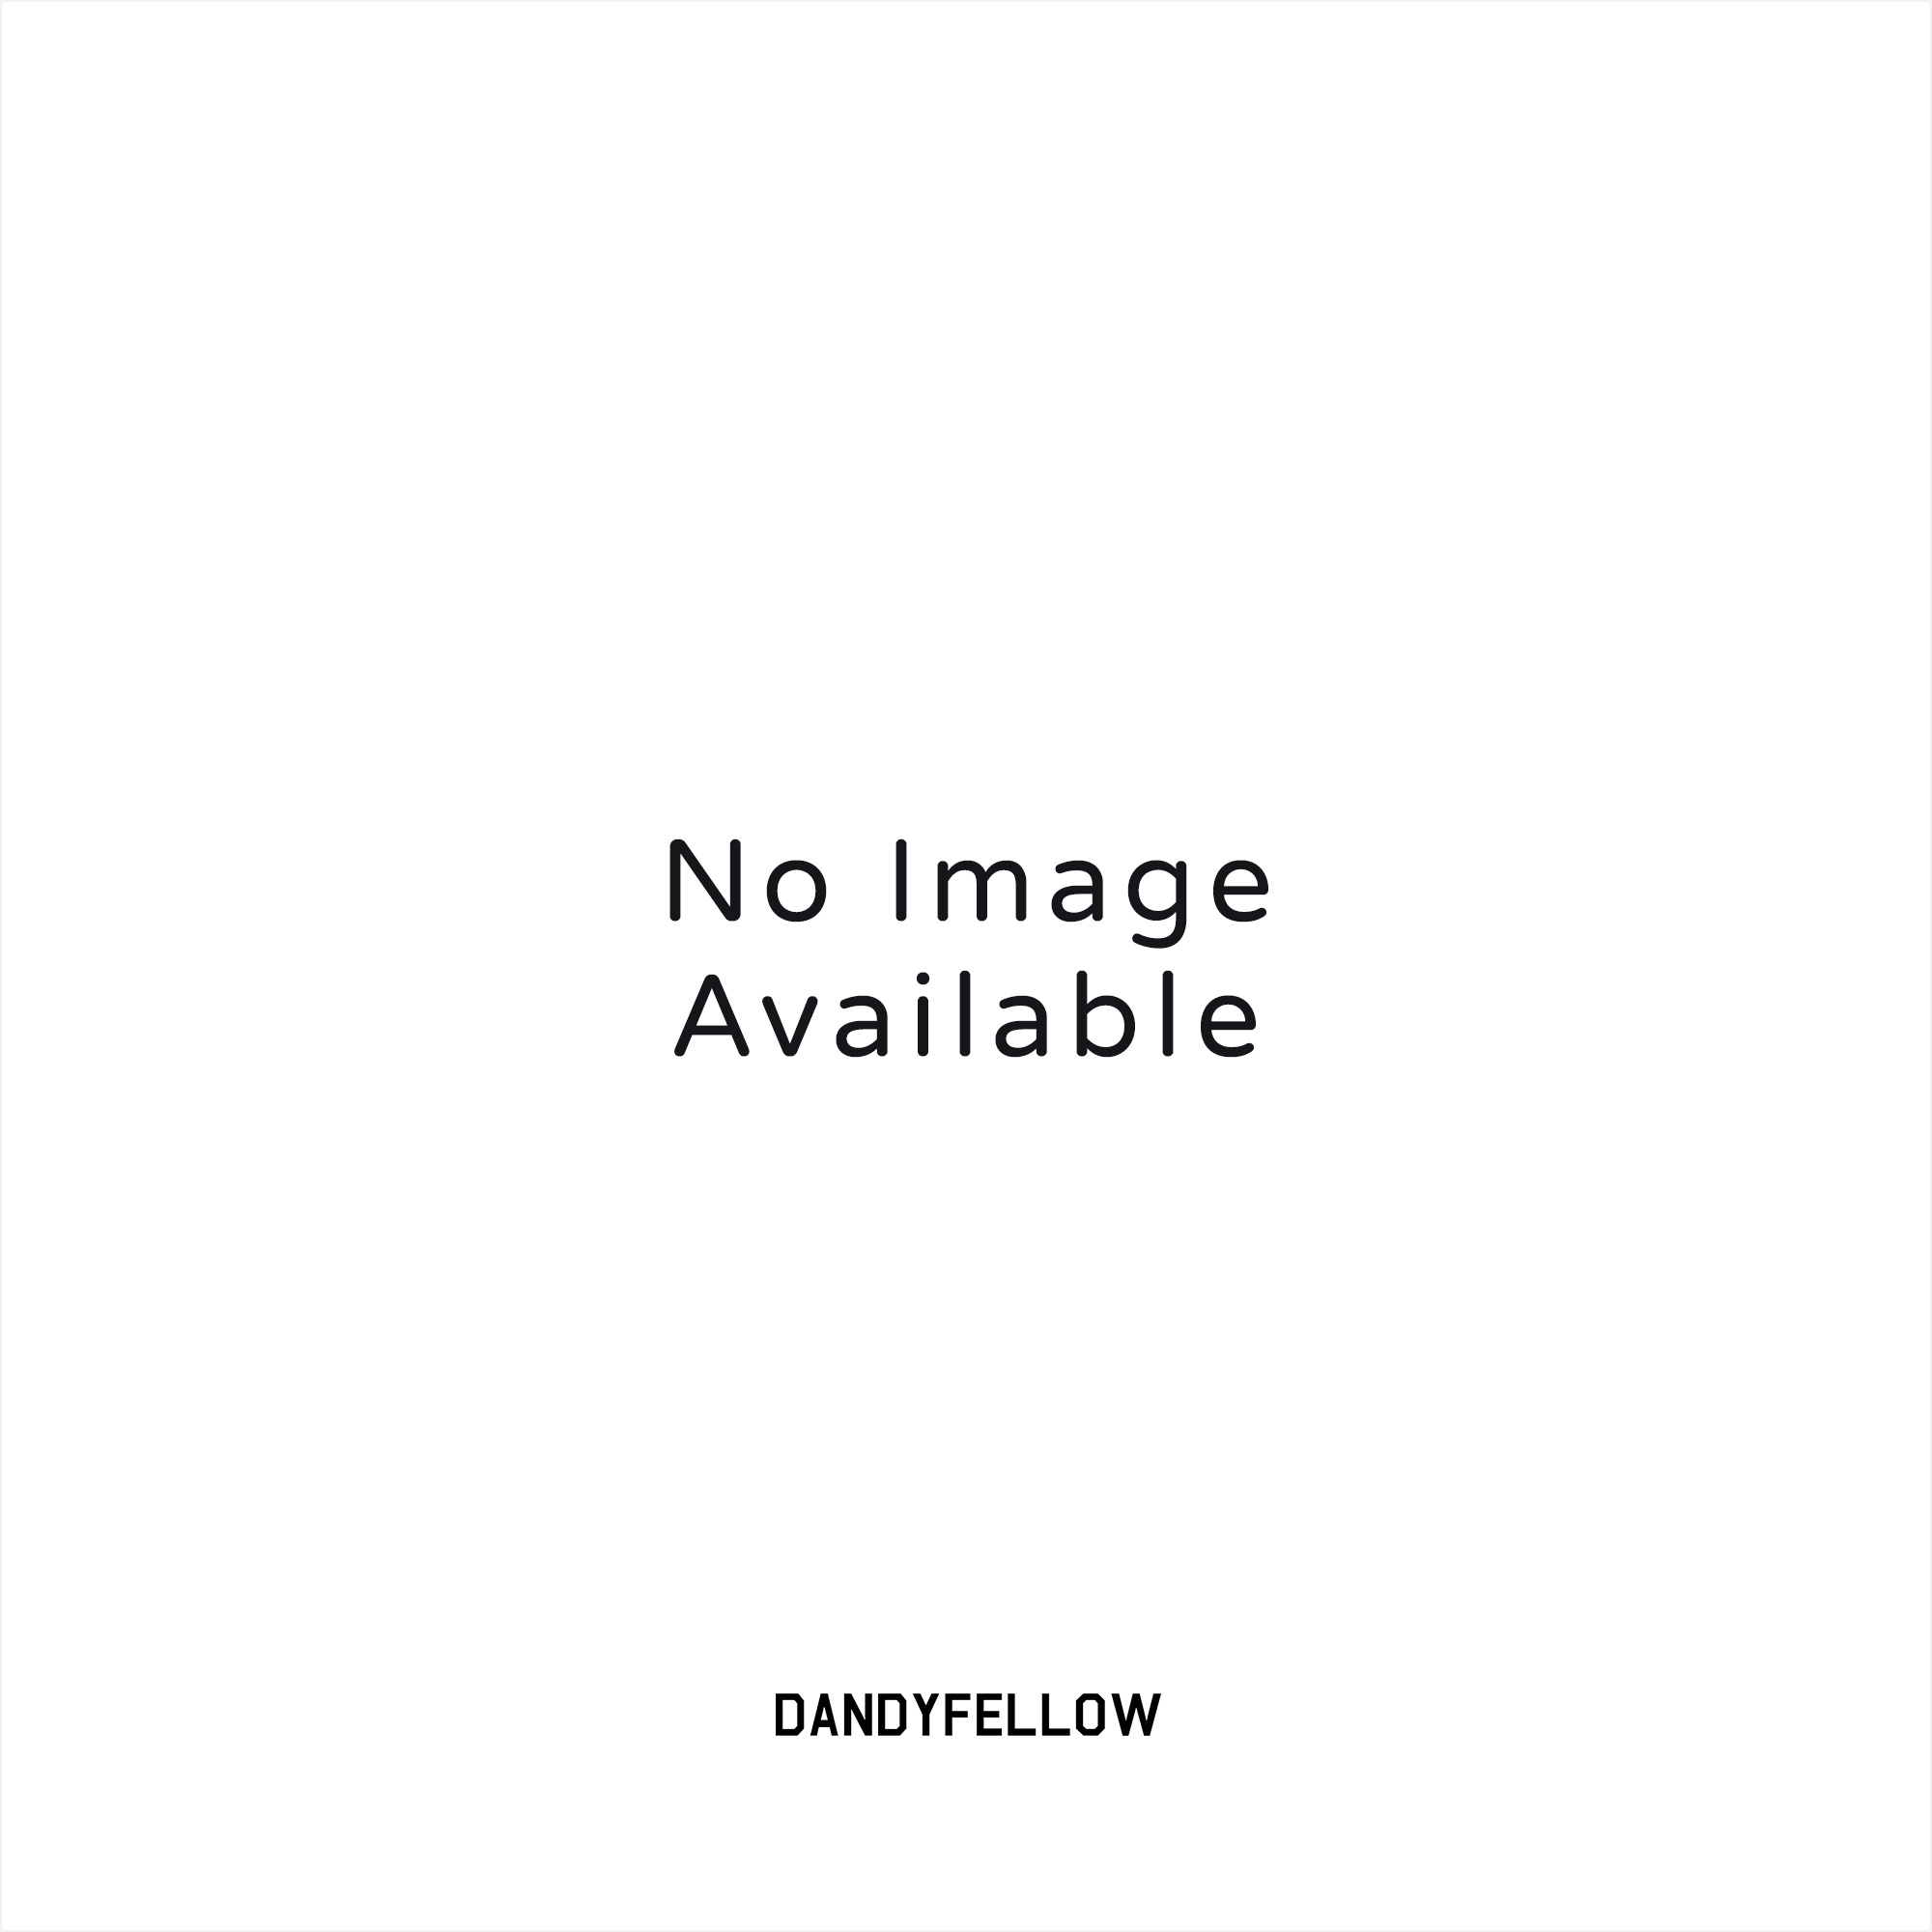 c6f567c3b7 Nike Air Max 1 (Black, Gum & Brown) at Dandy Fellow